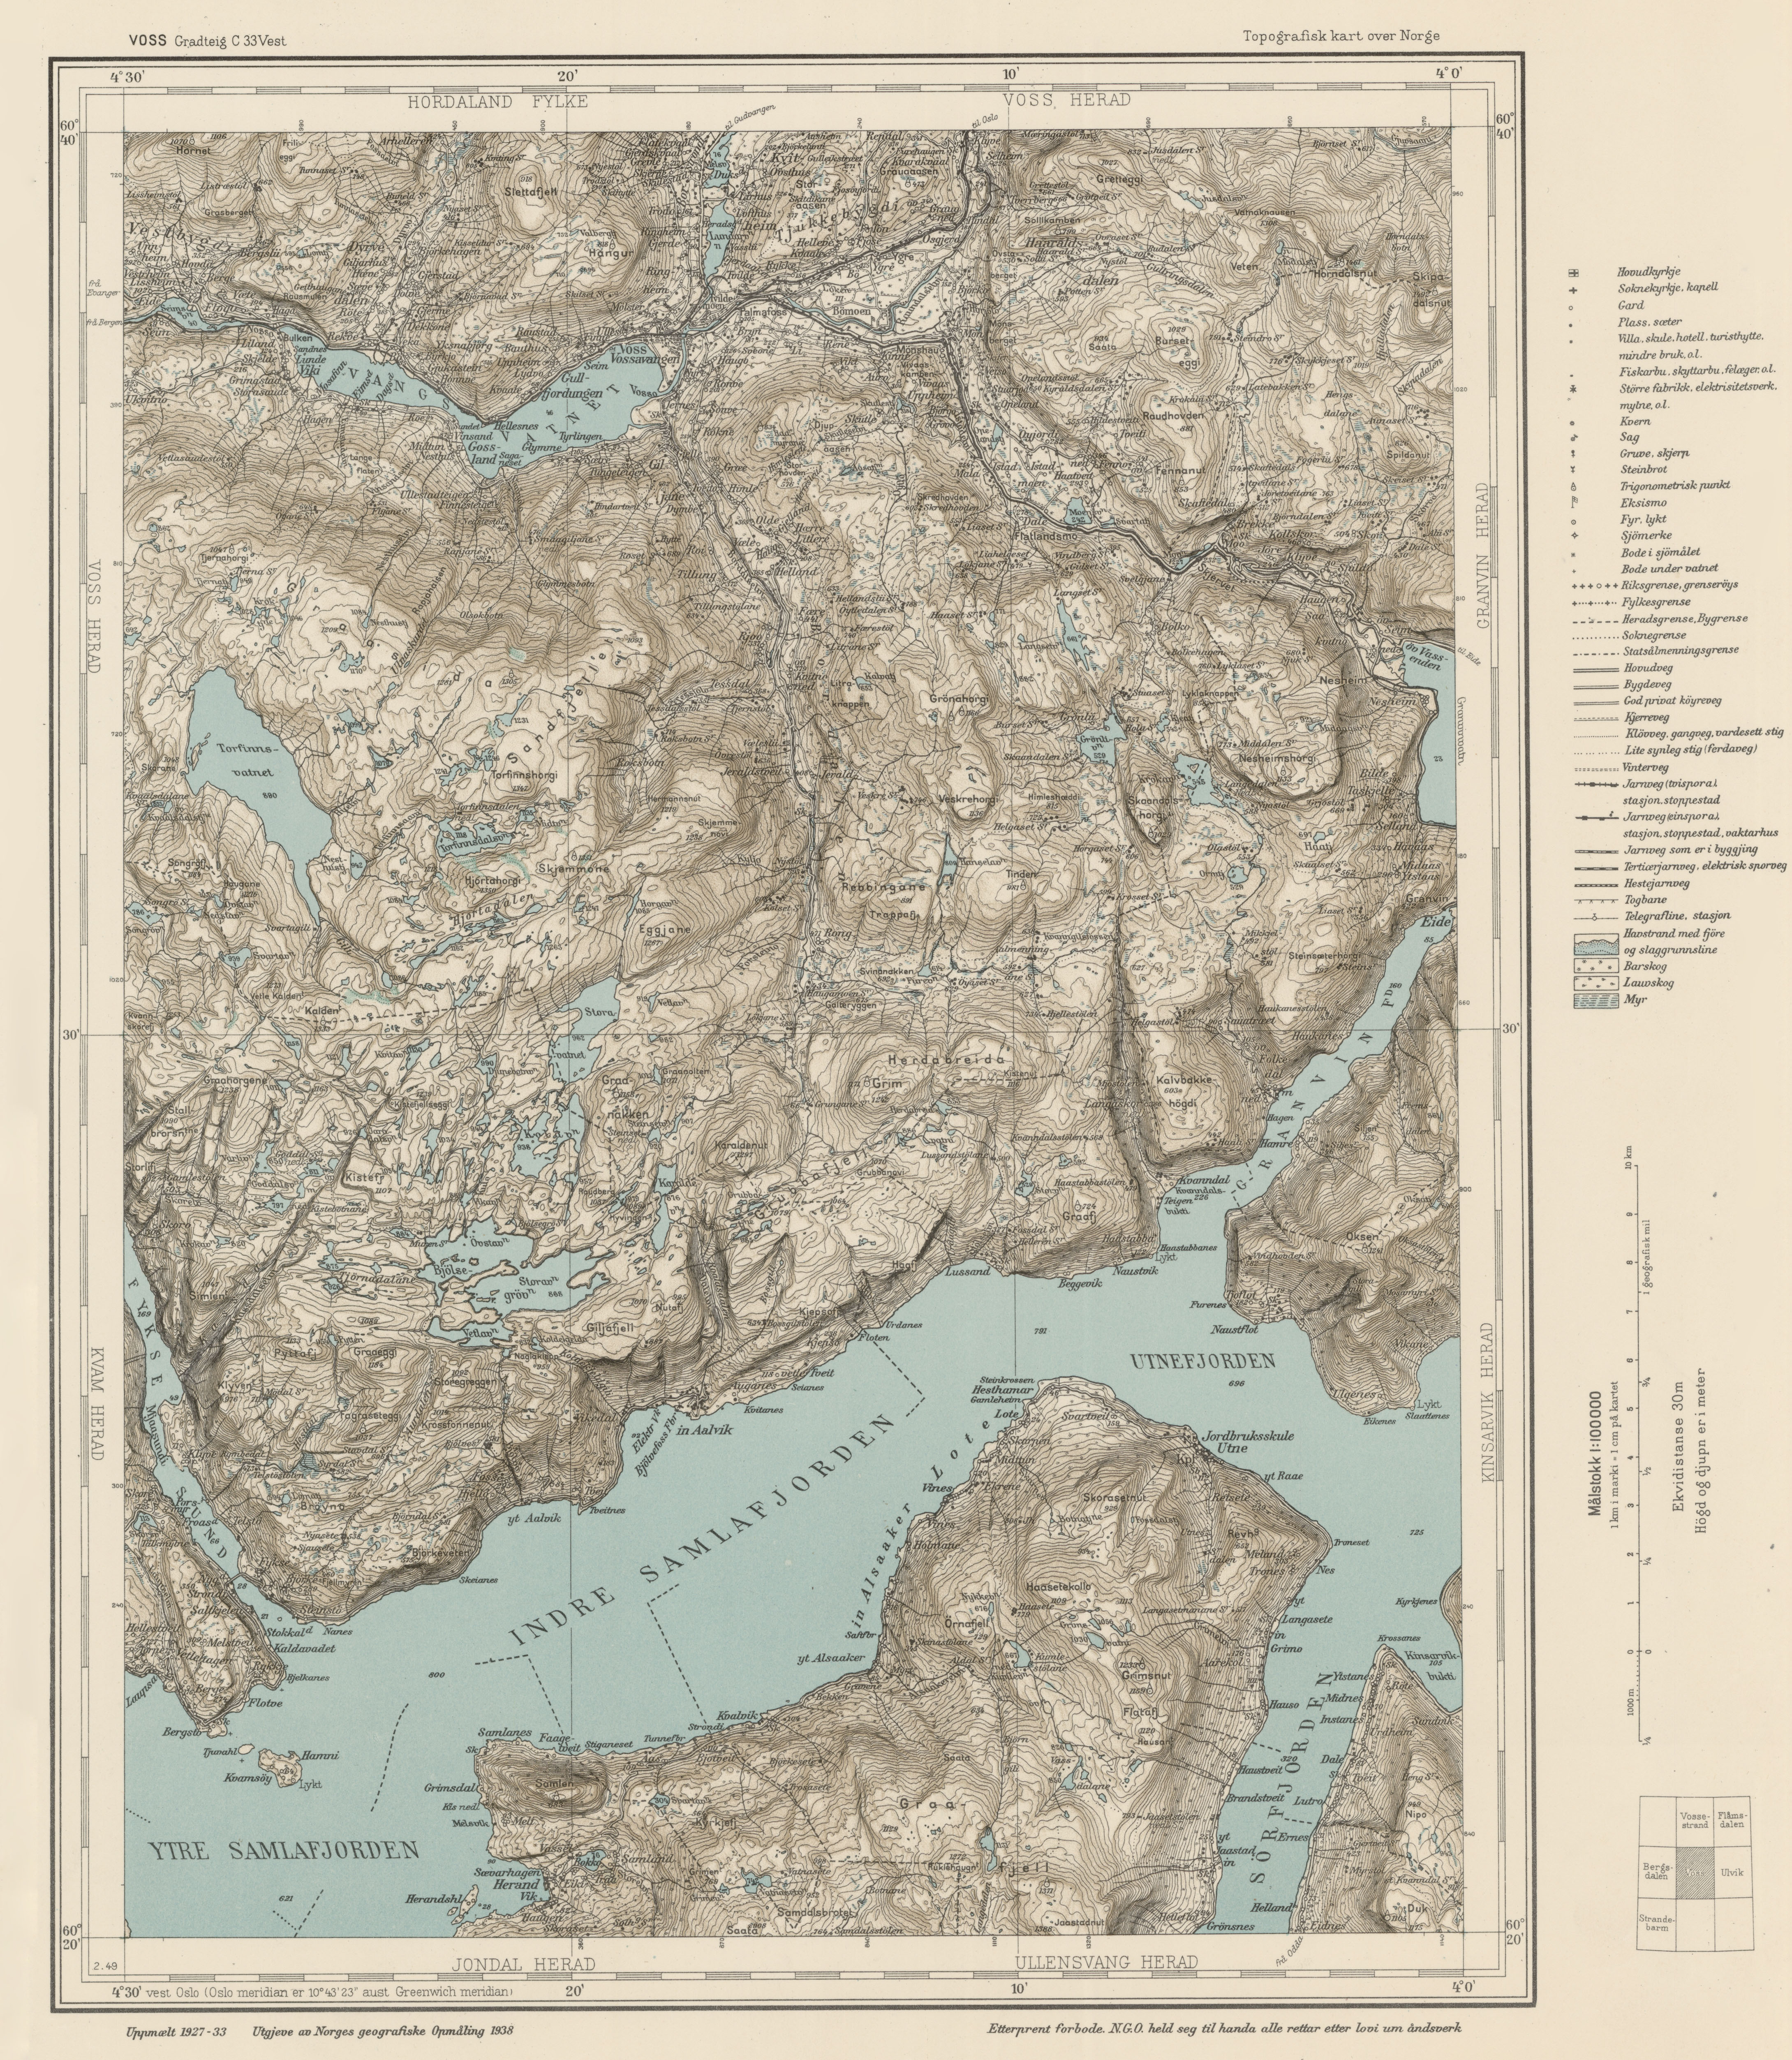 Topographic Map Of Norway.File Topographic Map Of Norway C33 Vest Voss 1938 Jpg Wikimedia